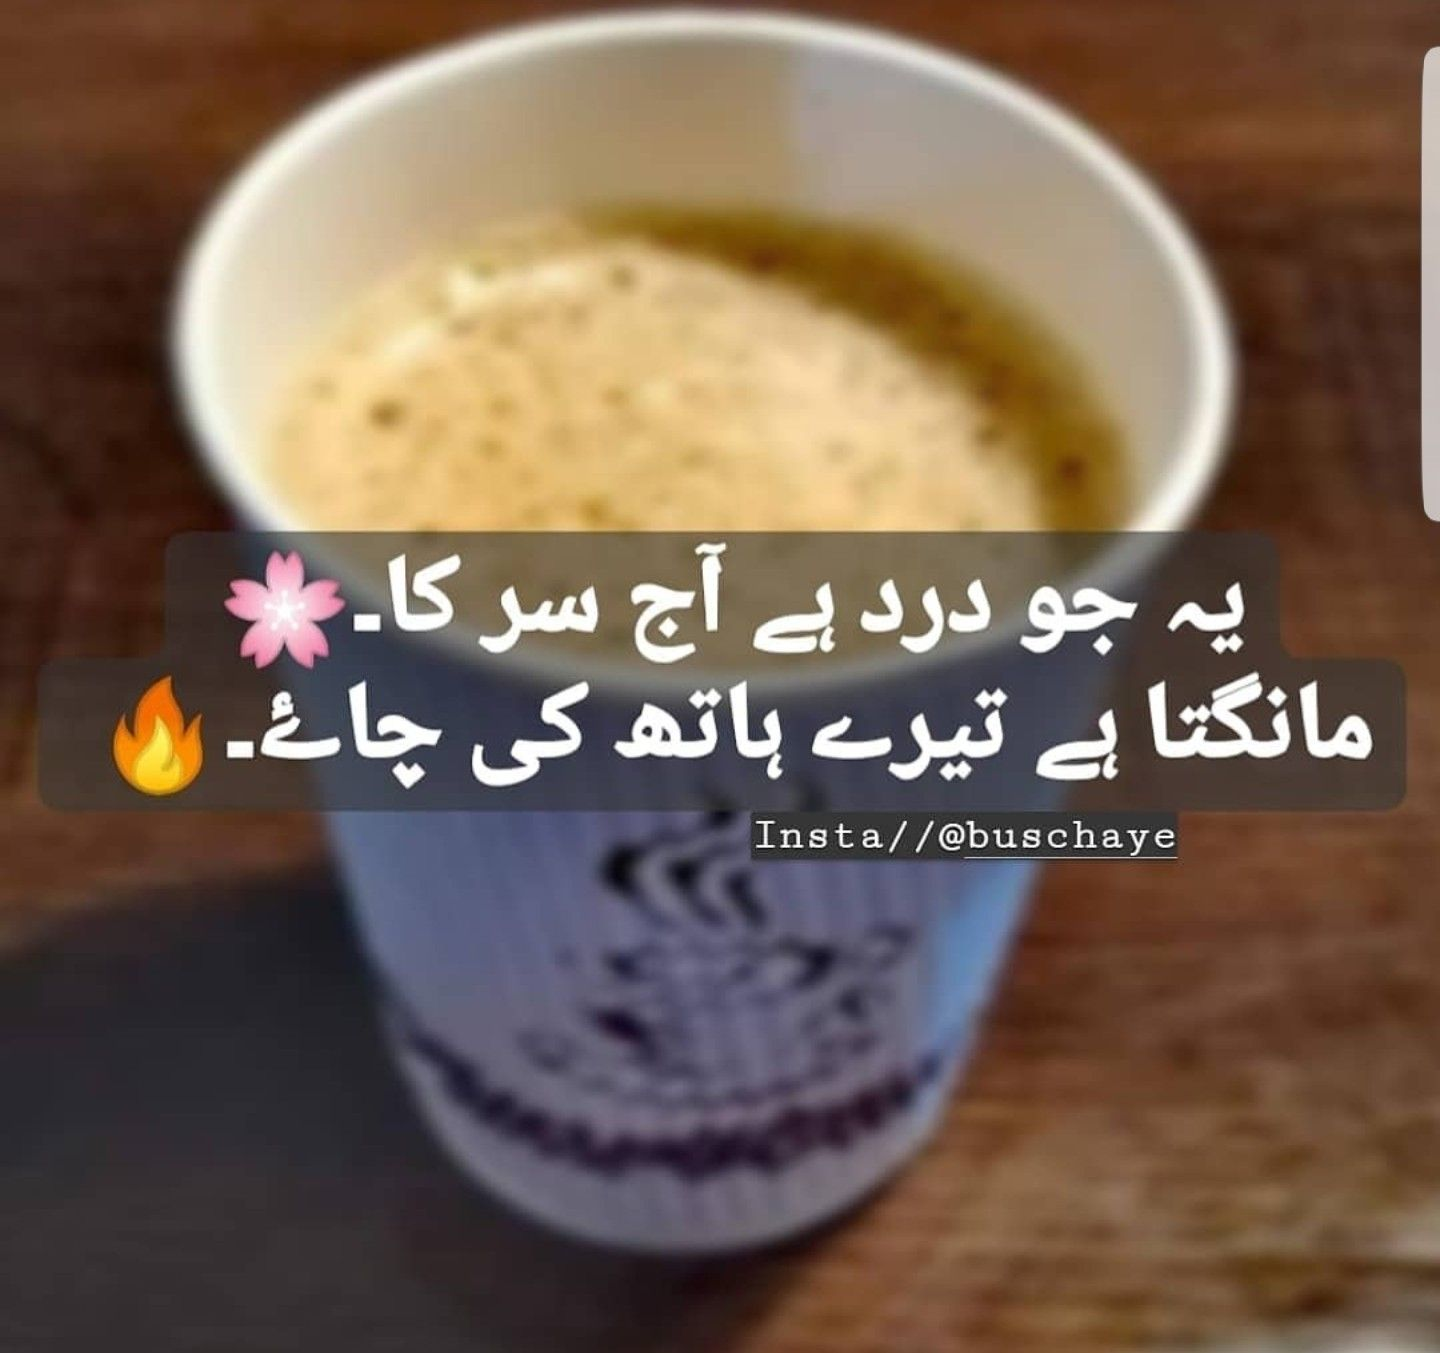 Pin by Cash On Delivery on A Cup Of Tea☕ ( چائے ) ♥️